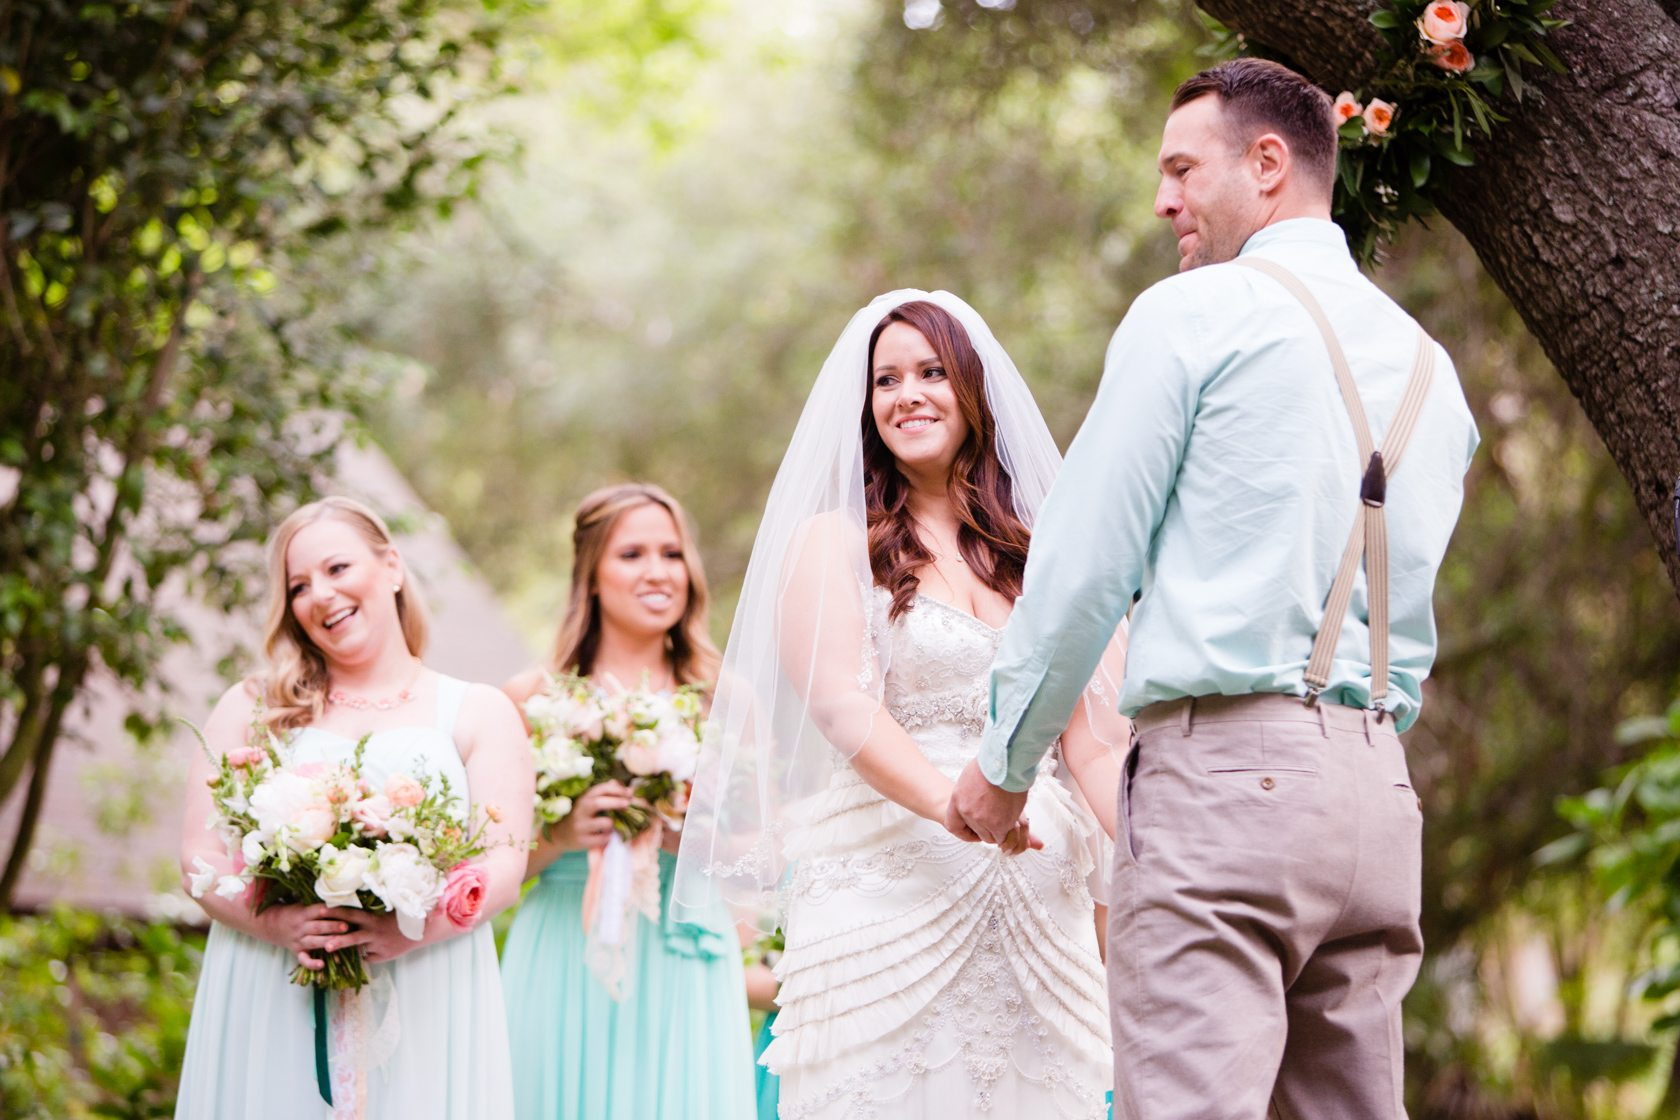 The_Printed_Palette_Wedding_at_Calamigos_Ranch_060.jpg